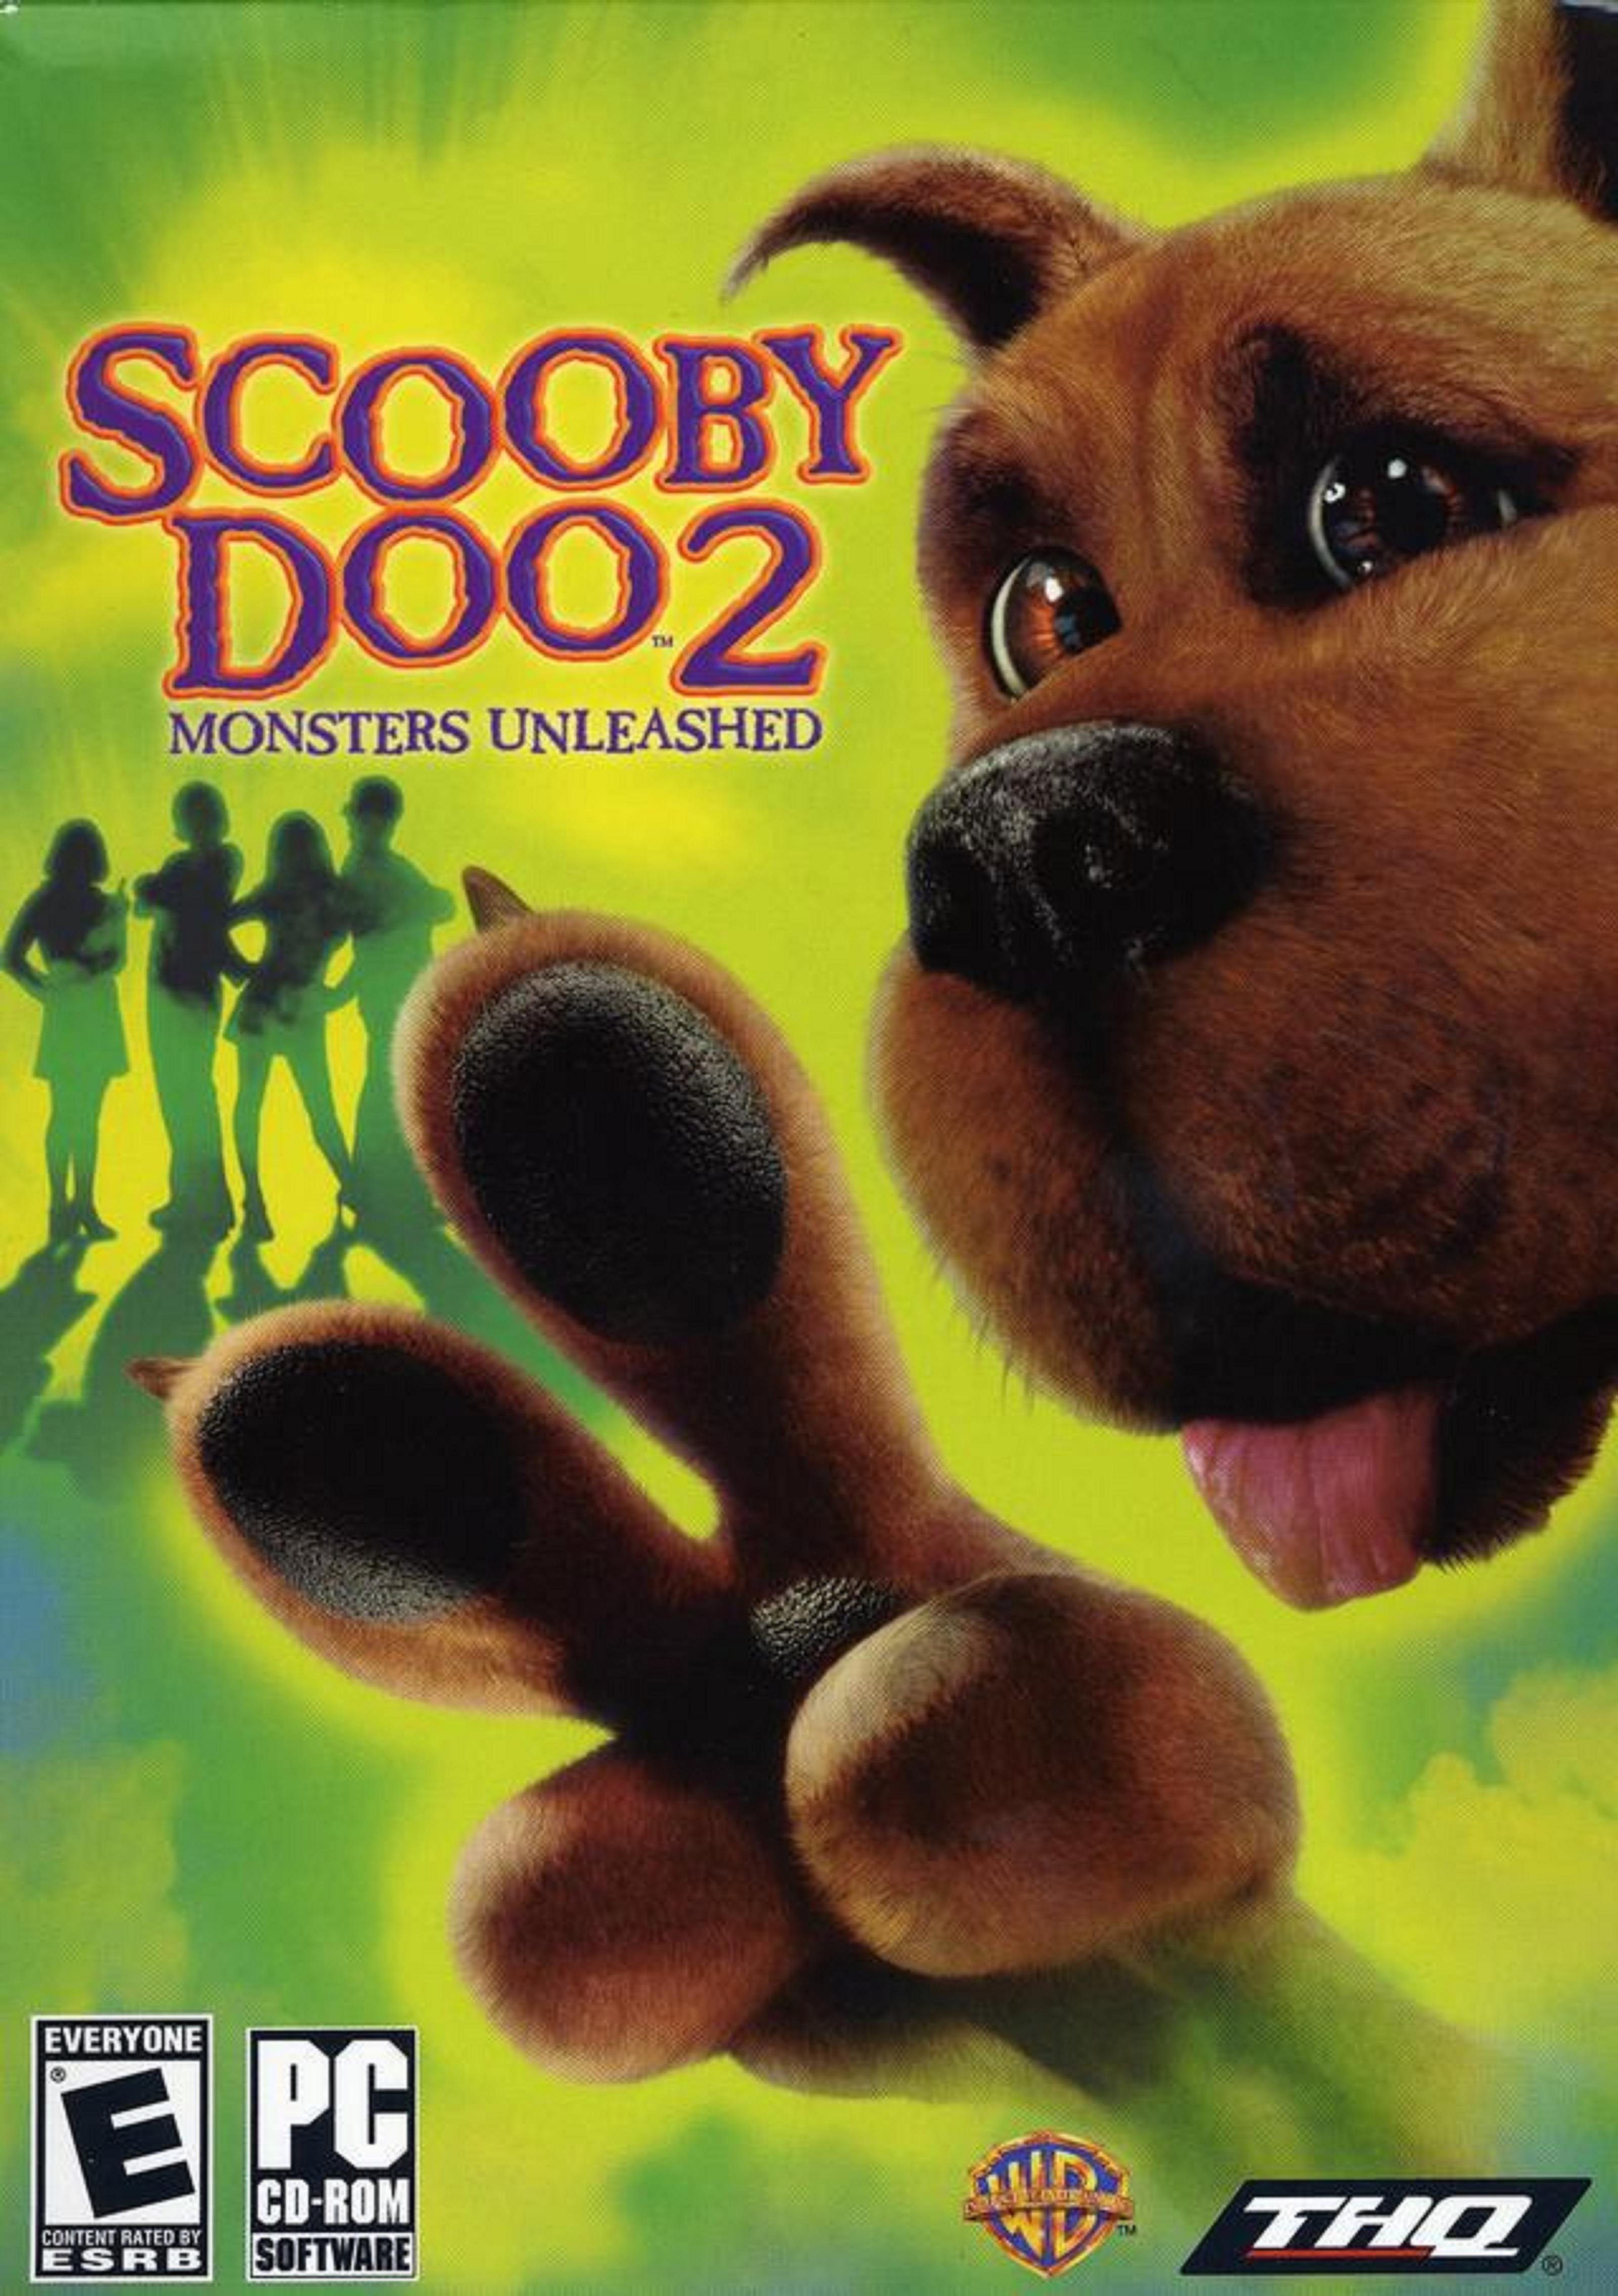 Scooby Doo 2 Monsters Unleashed Video Game 2004 Imdb